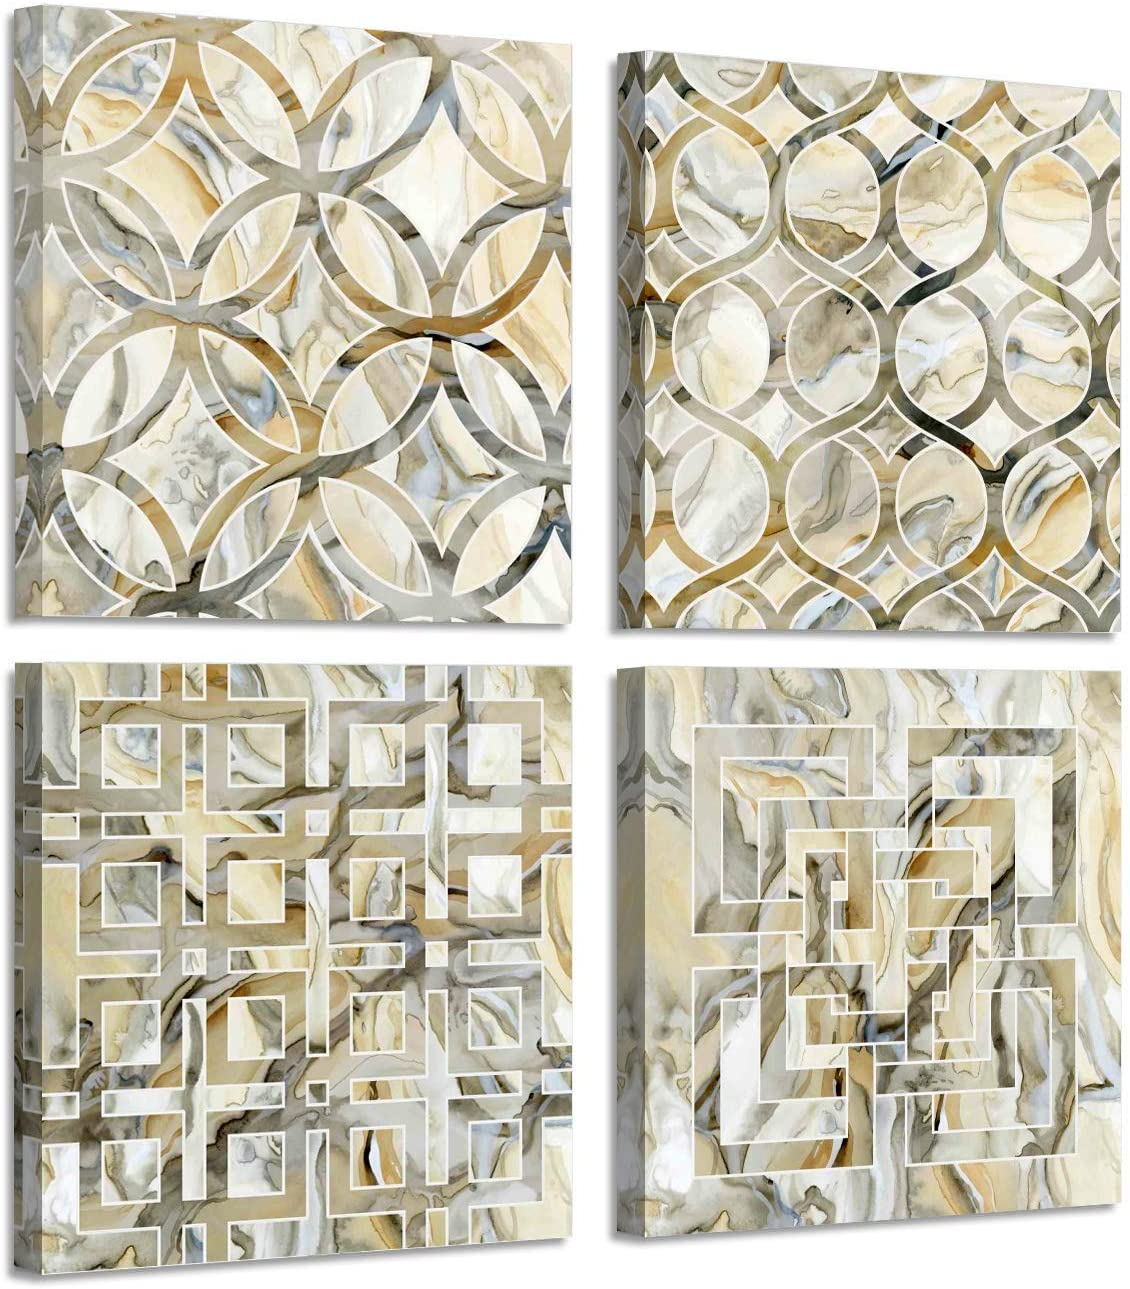 Abstract Vintage grid Pattern Abstract Paintings Canvas Wall Art for Living Room Bedroom Artwork Pictures 4 Piece Ready to Hang for Home decor Bathroom Kitchen Office Wall decor posters Decoration